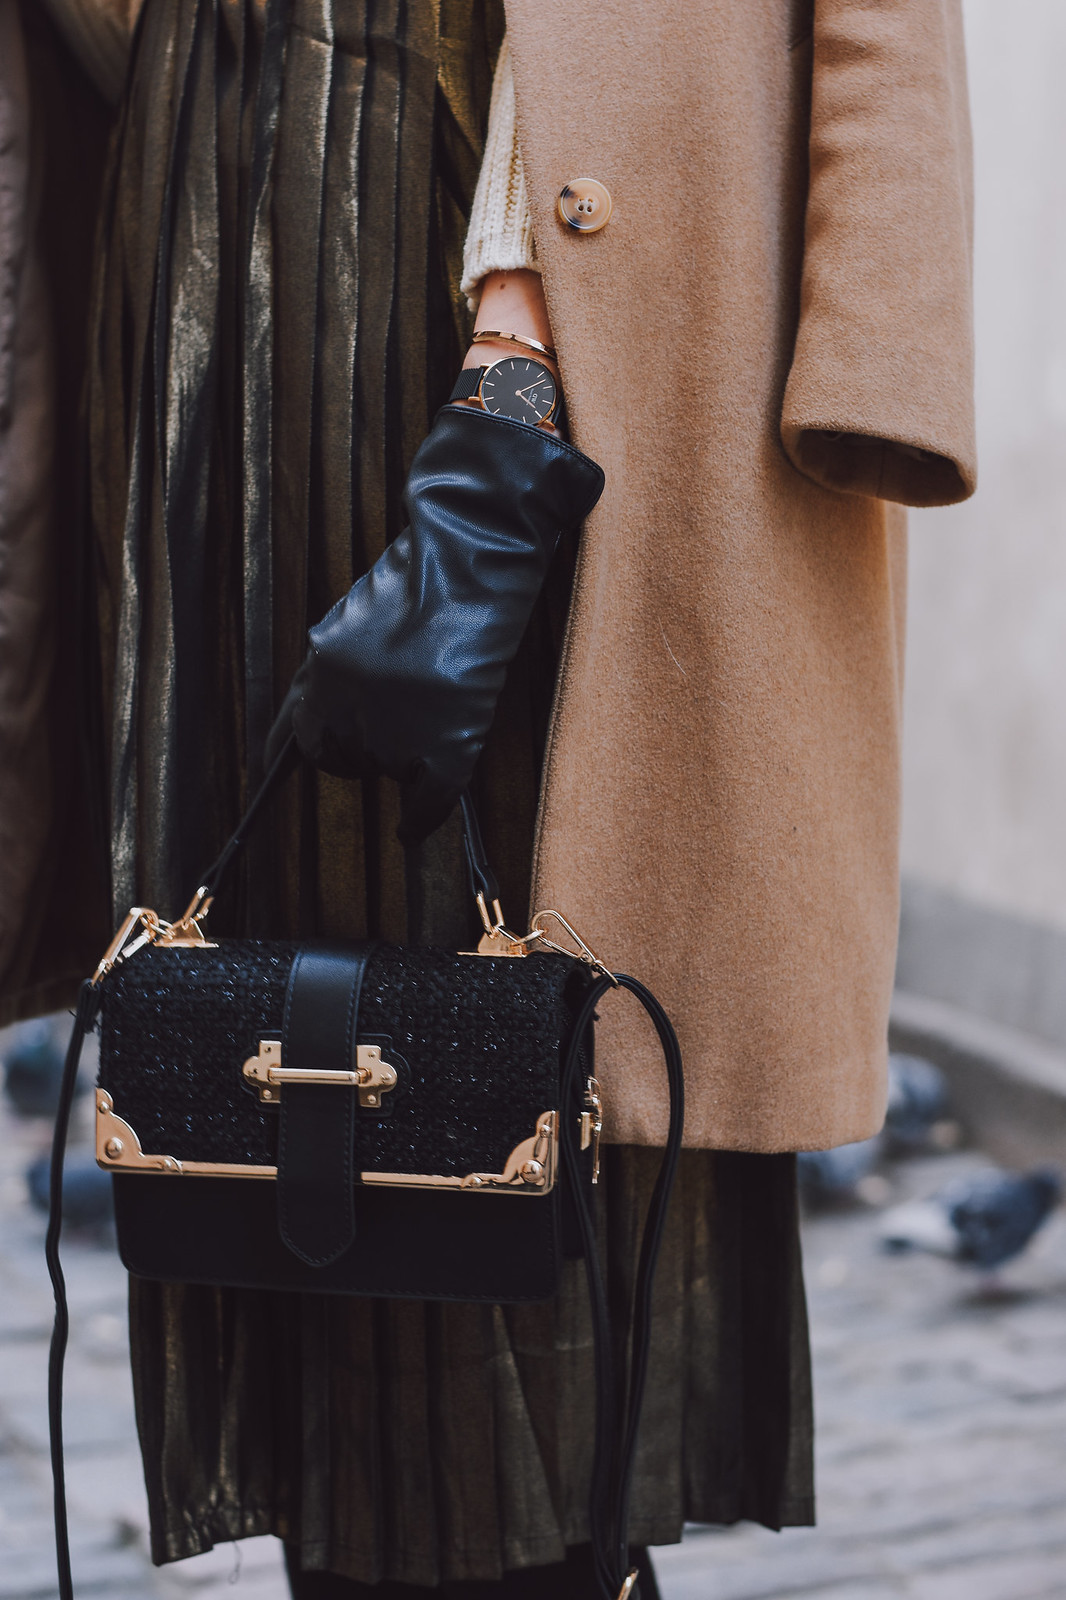 Winter outfit details